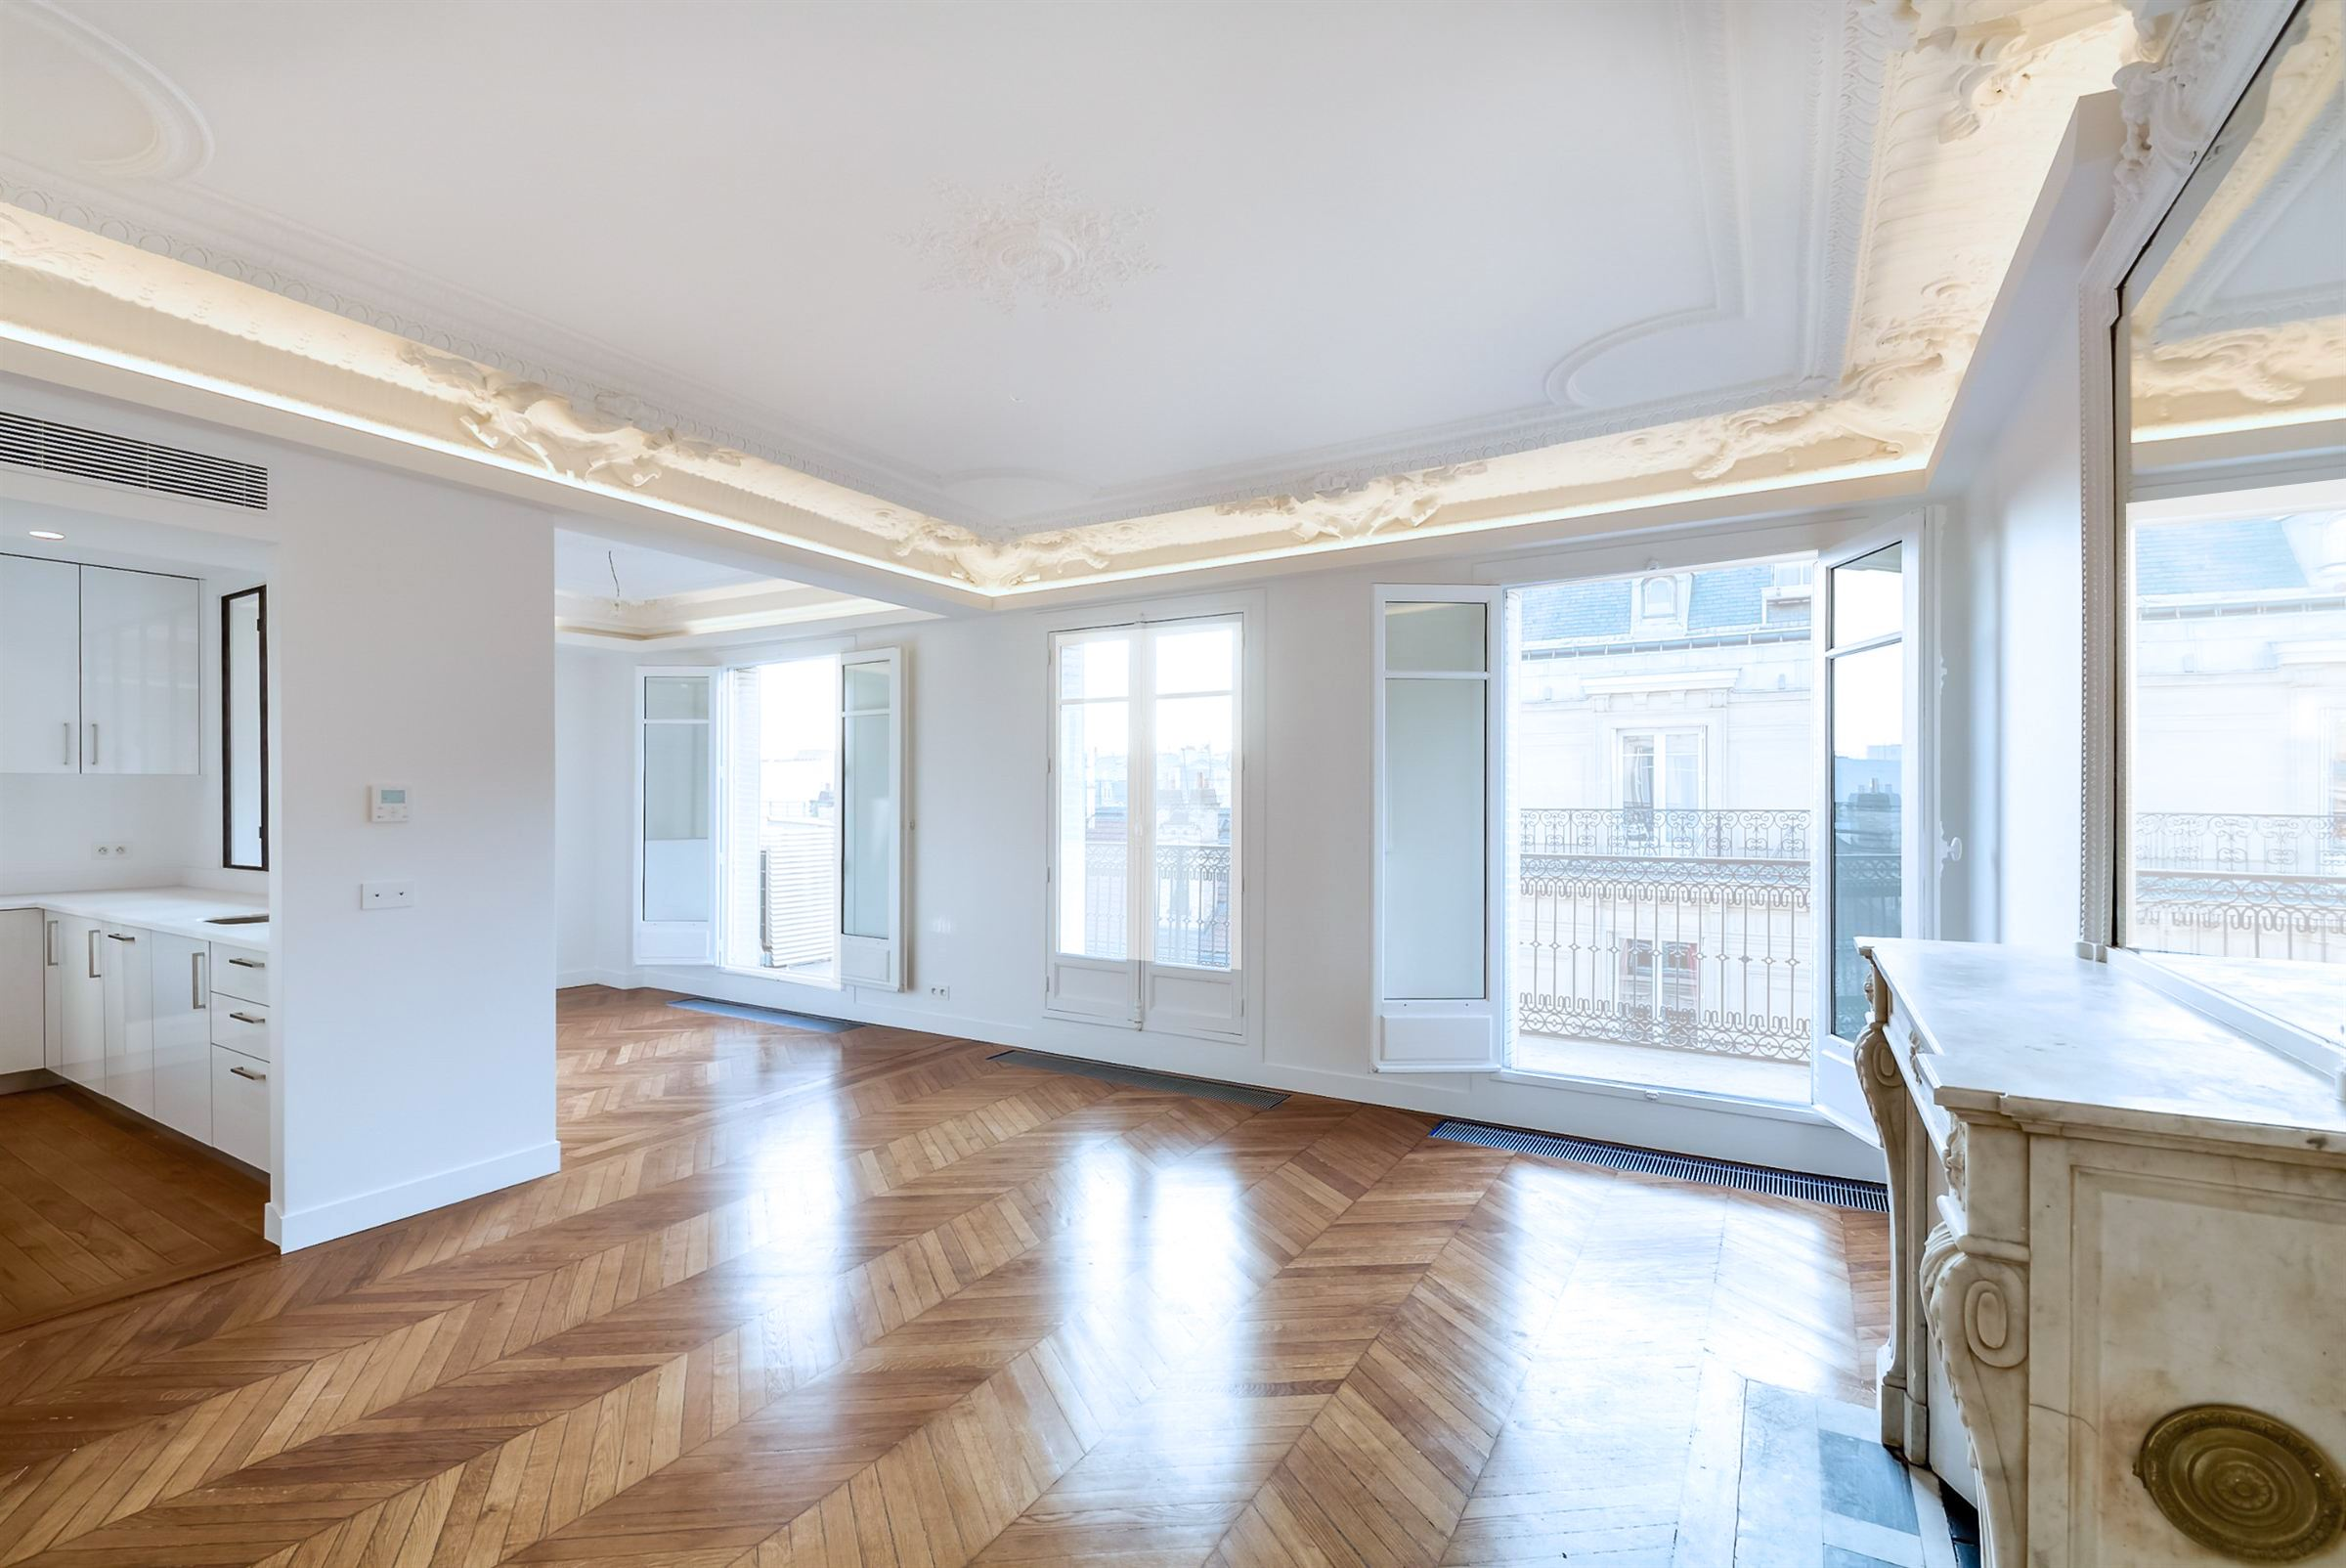 Property For Sale at Paris 8 - Triangle d'Or. Refurbished 91 sq.m. apartment, Eifffel Tower view